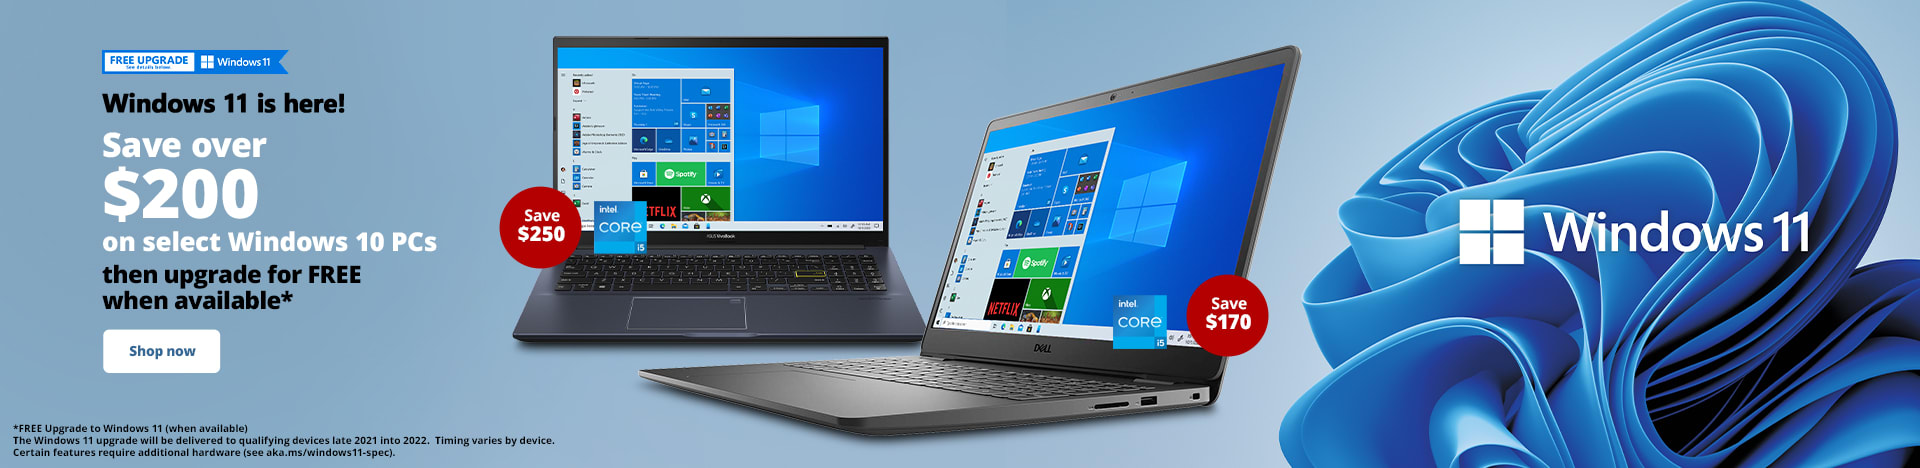 Windows 11 is here! Save over $200 on select Windows 10 PCs, then upgrade for FREE when available